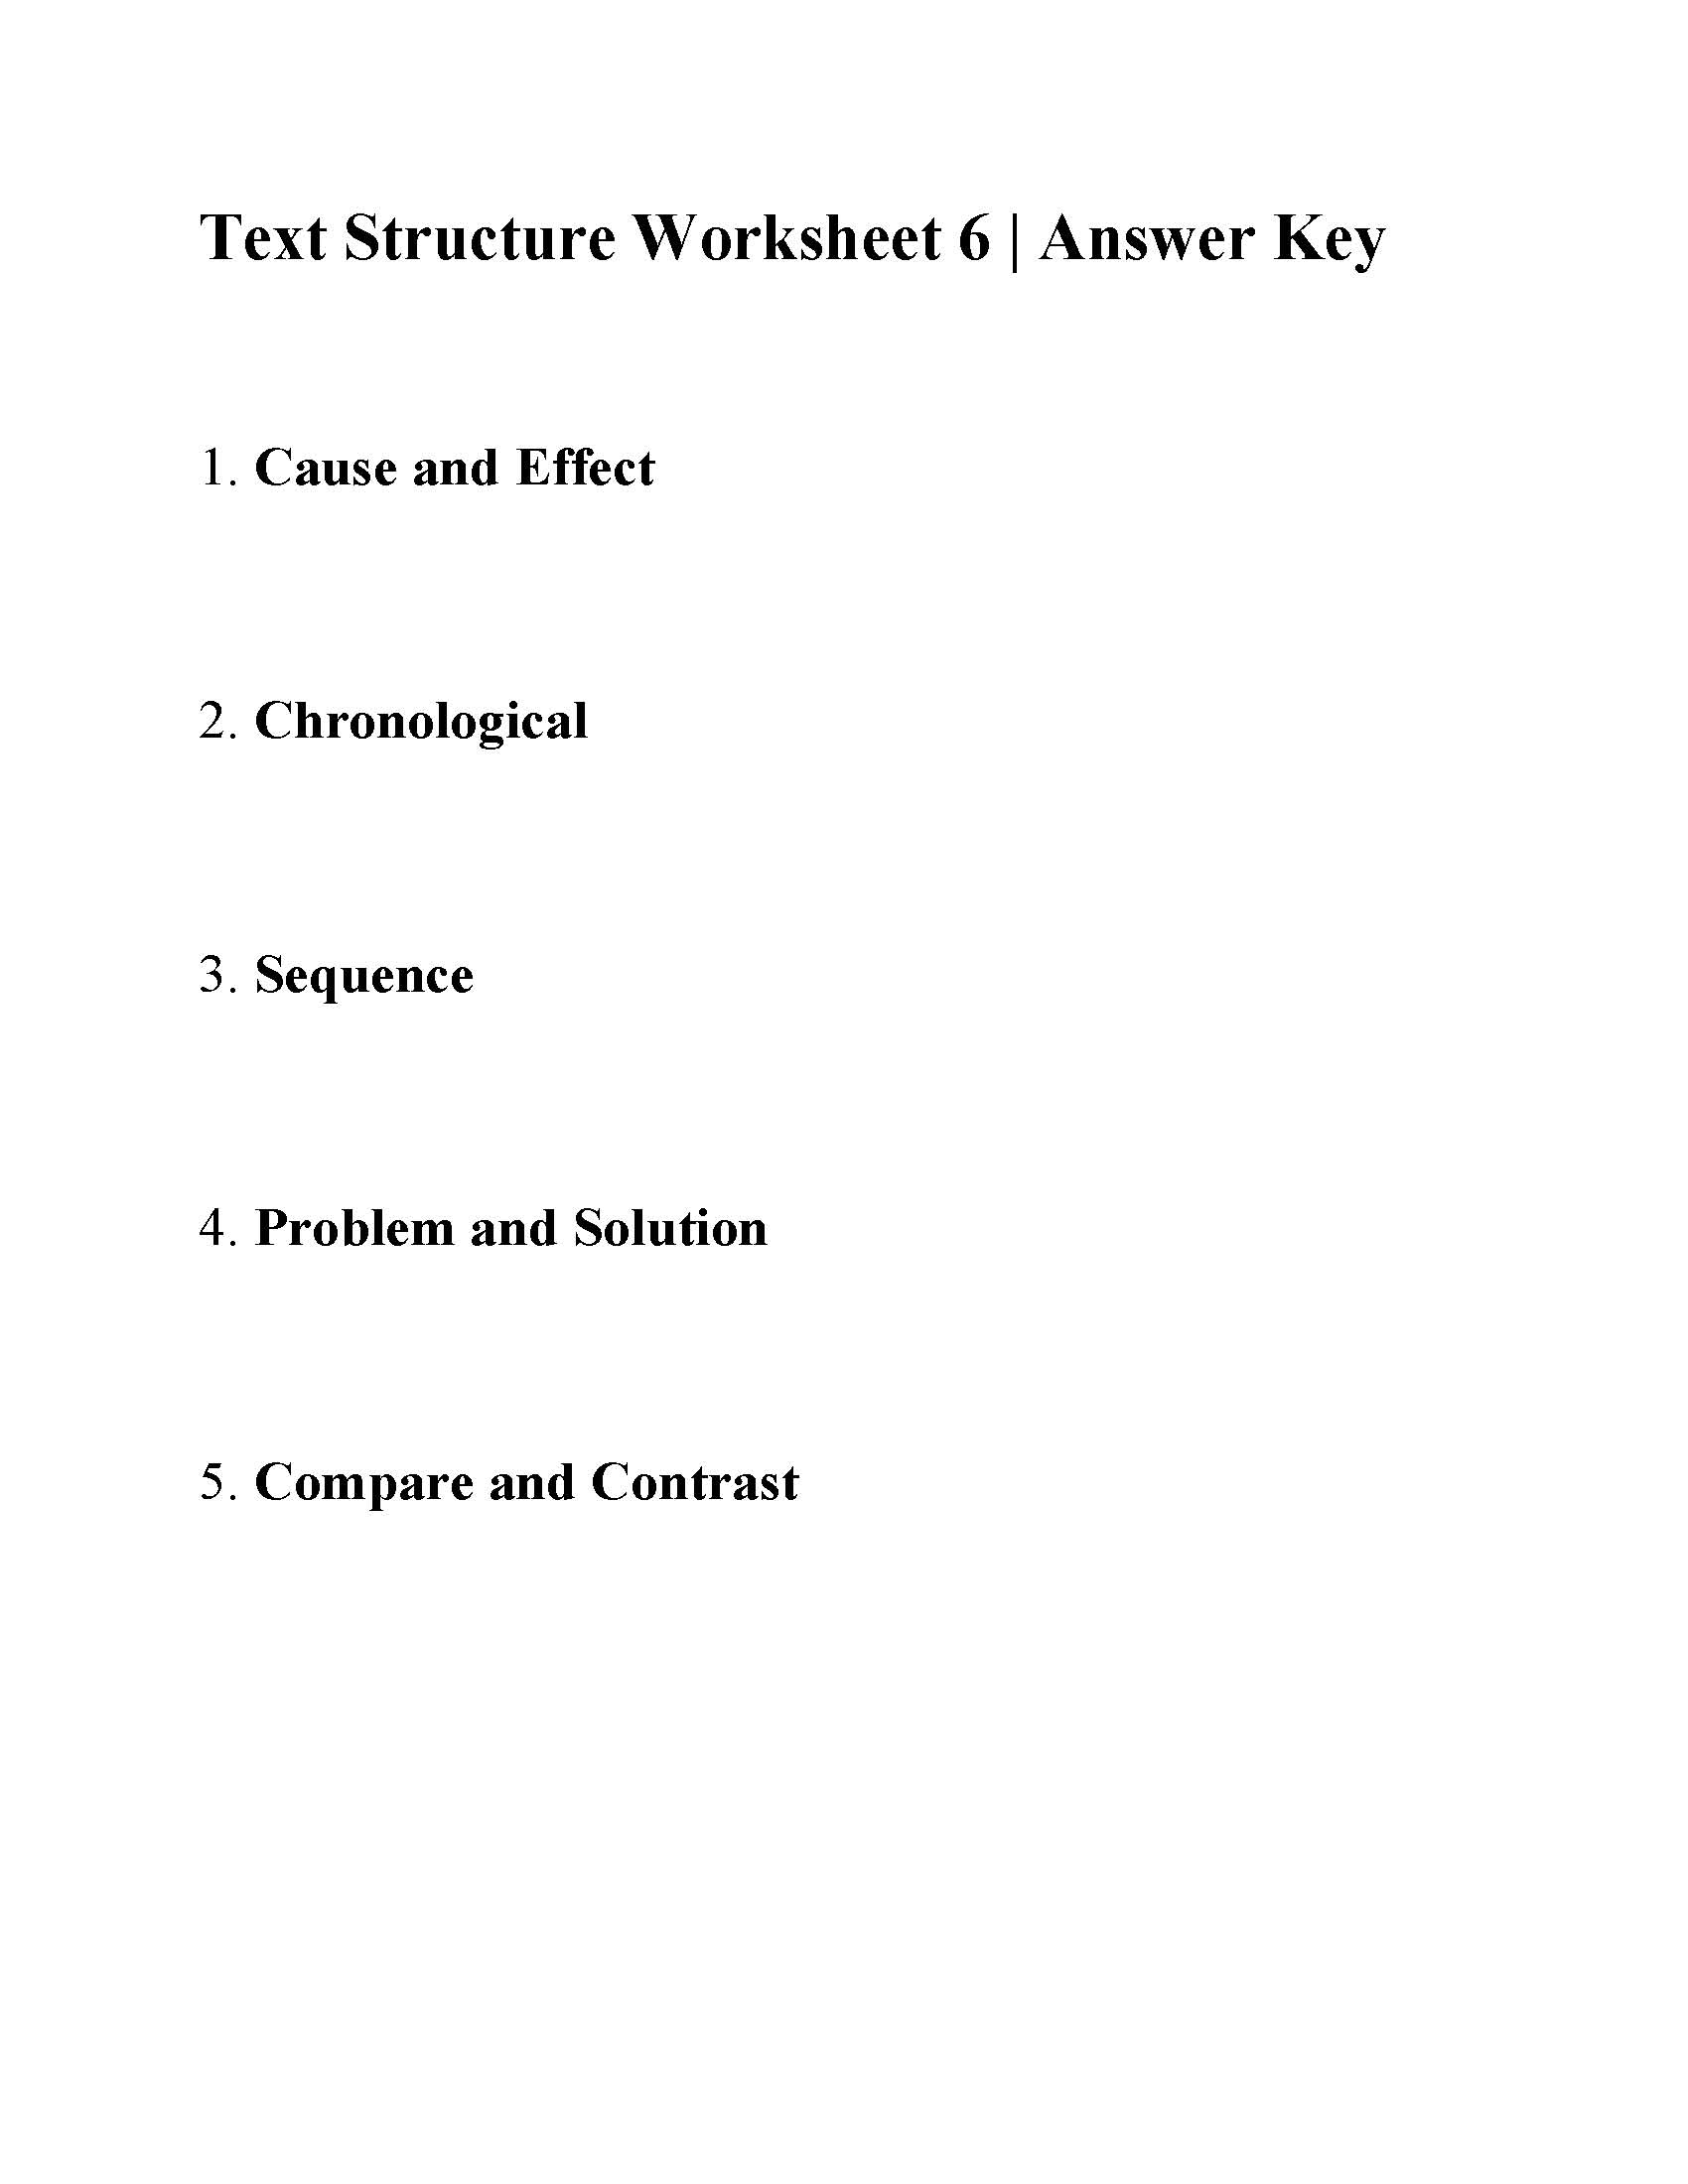 Text Structure Worksheet 6